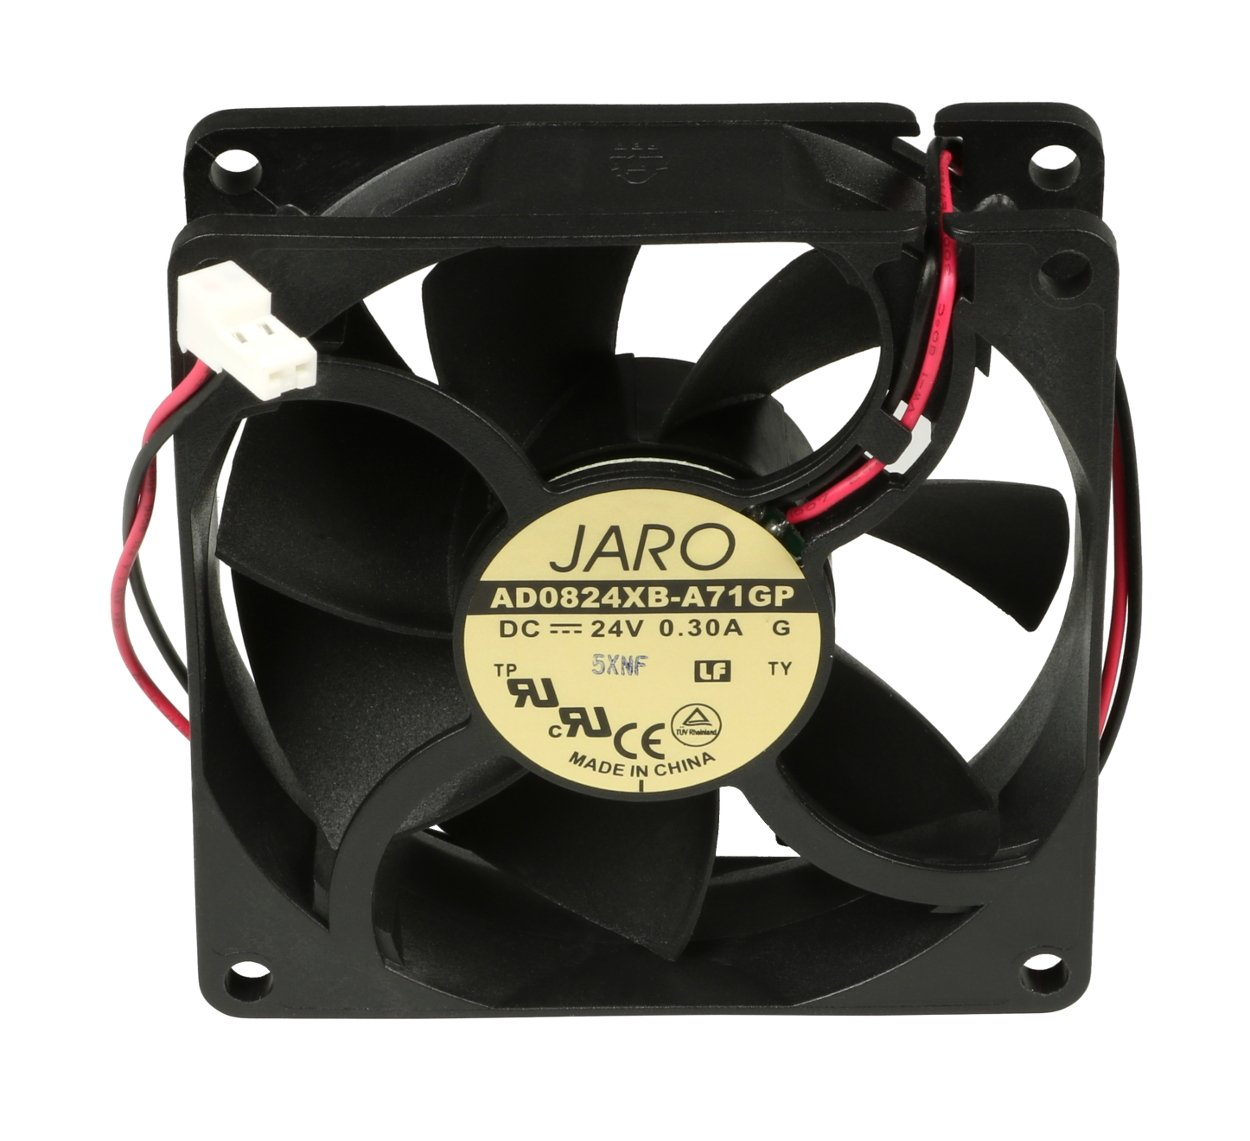 24VDC Fan for CTs 1600, CTs 2000, and CTs 3000